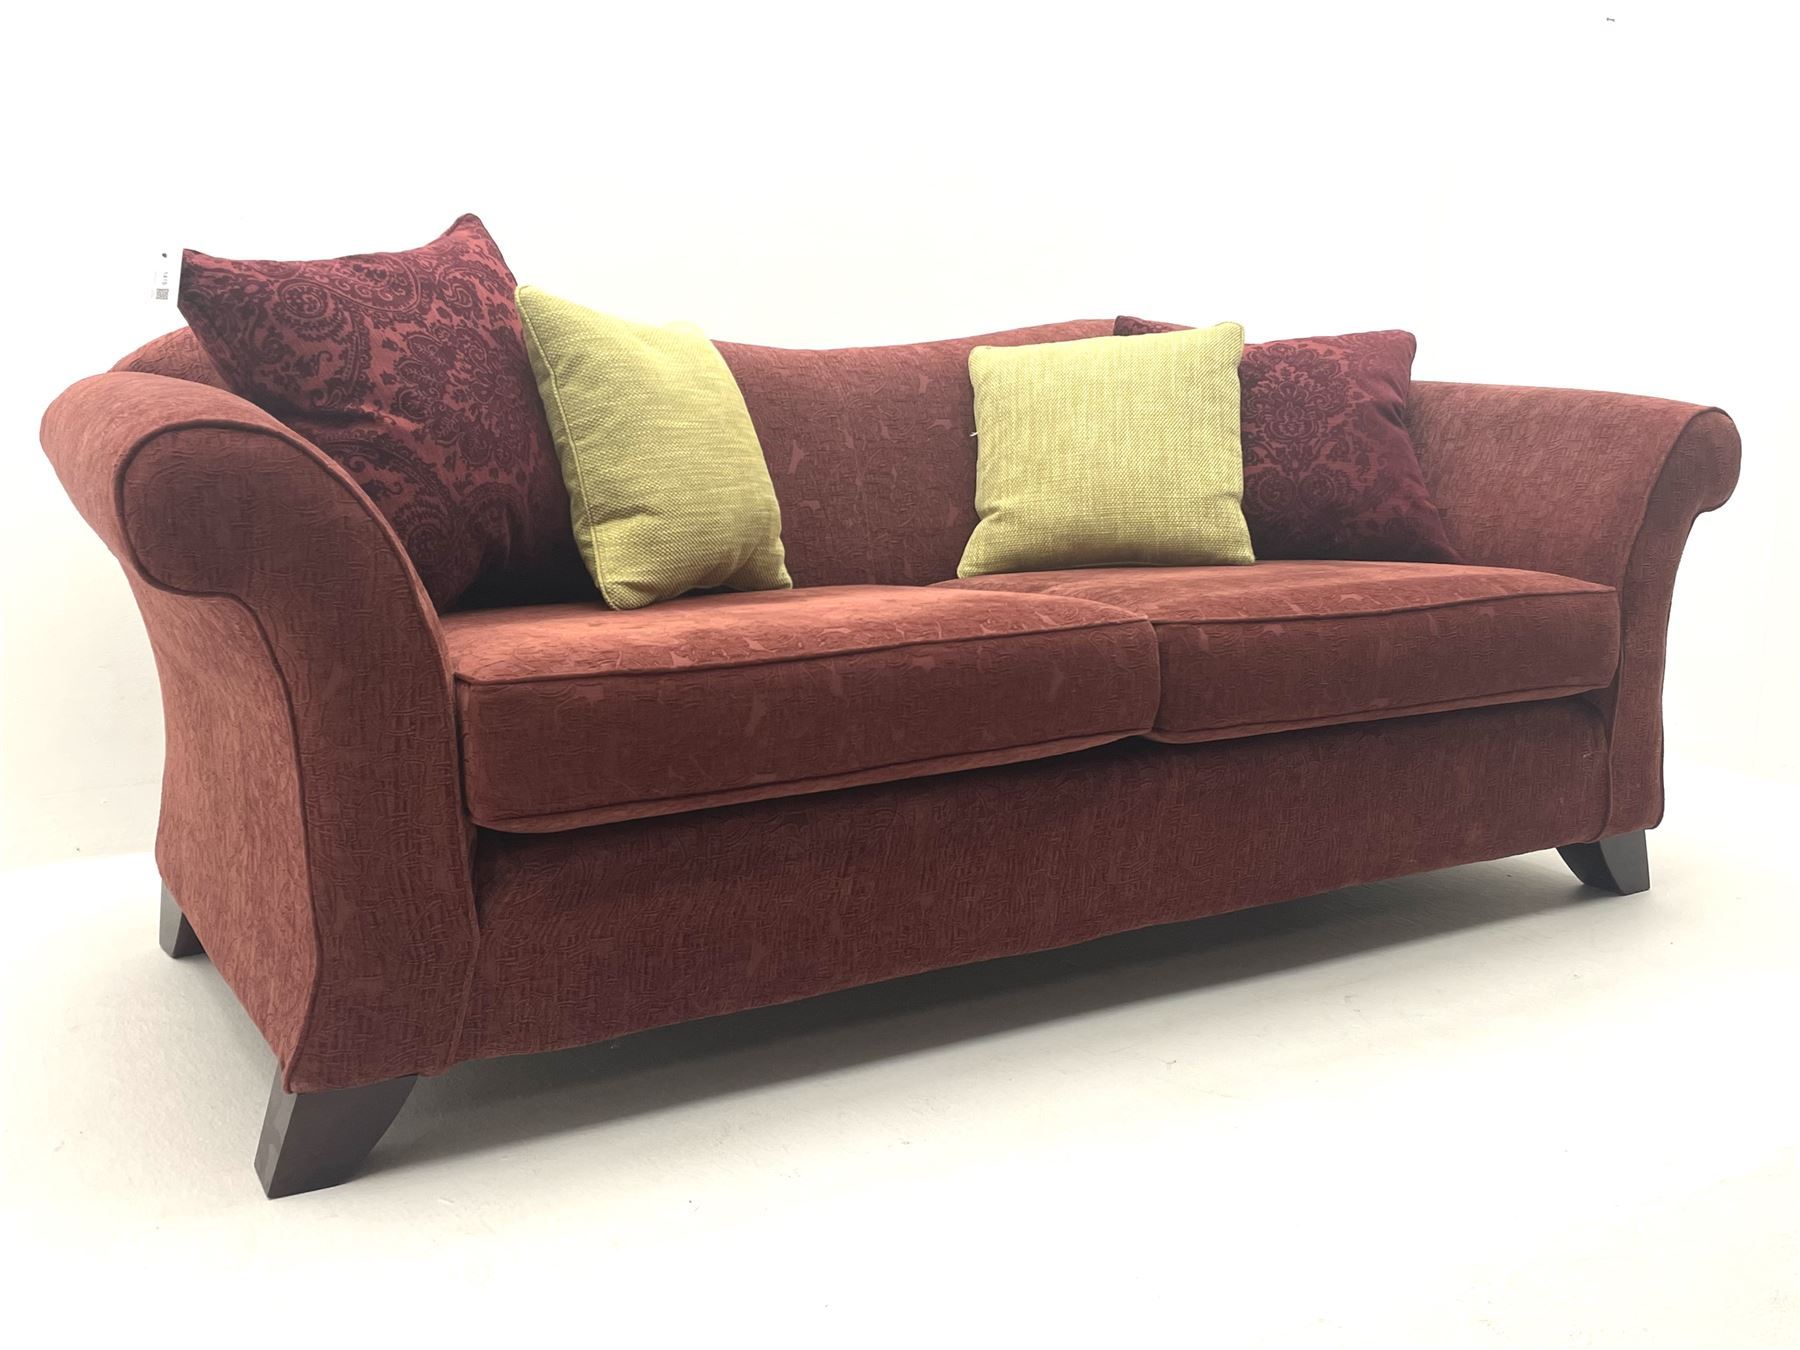 Multi-York - three seat sofa upholstered in red patterned fabric with contrasting feather scatter cu - Image 4 of 4